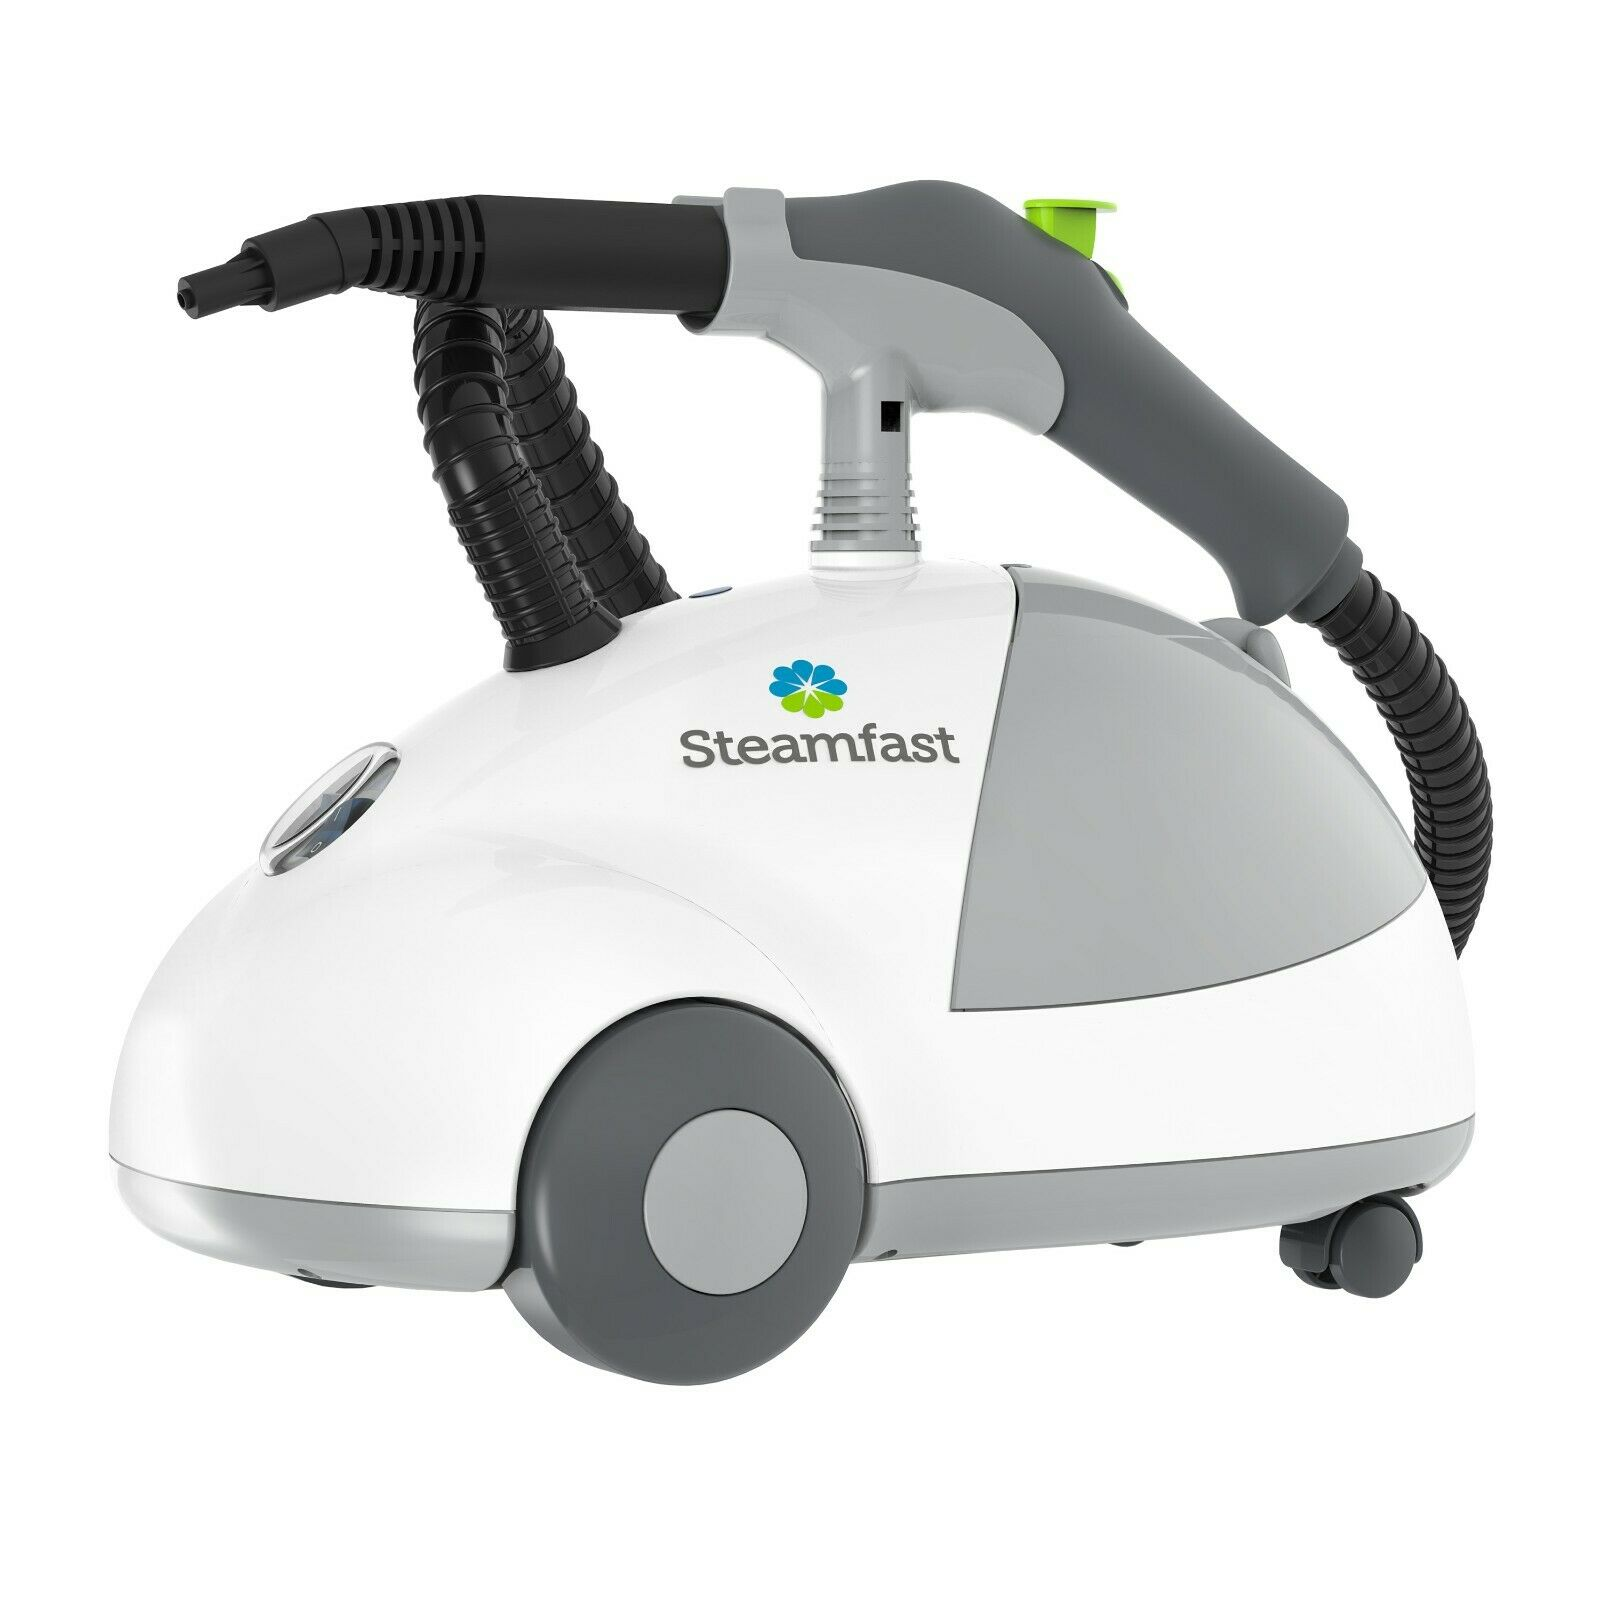 SteamFast Heavy Duty Steam Cleaner - Compare to McCulloch MC